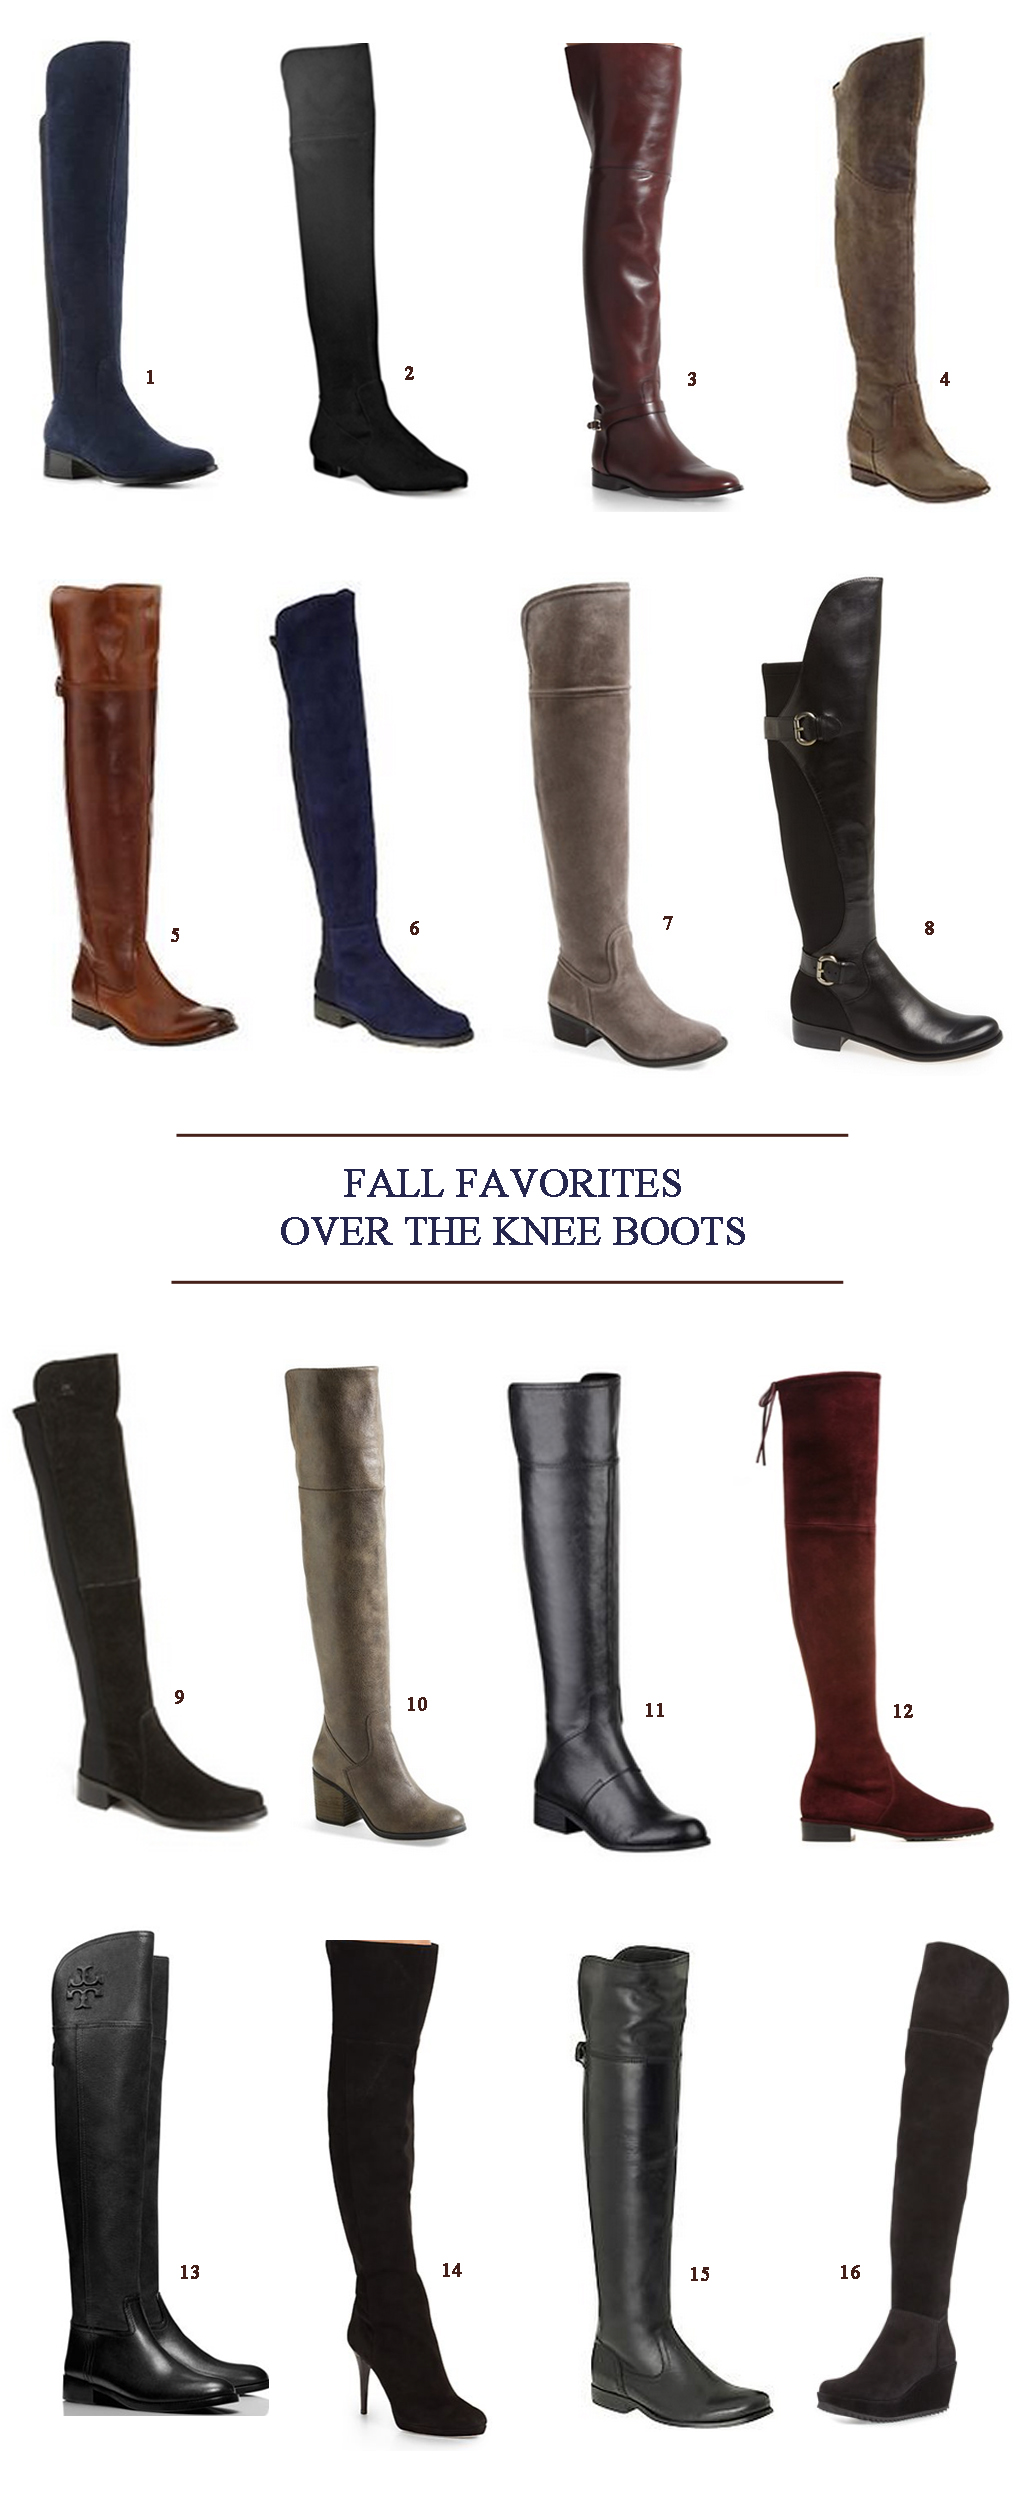 Over The Knee Boots for Fall 2014